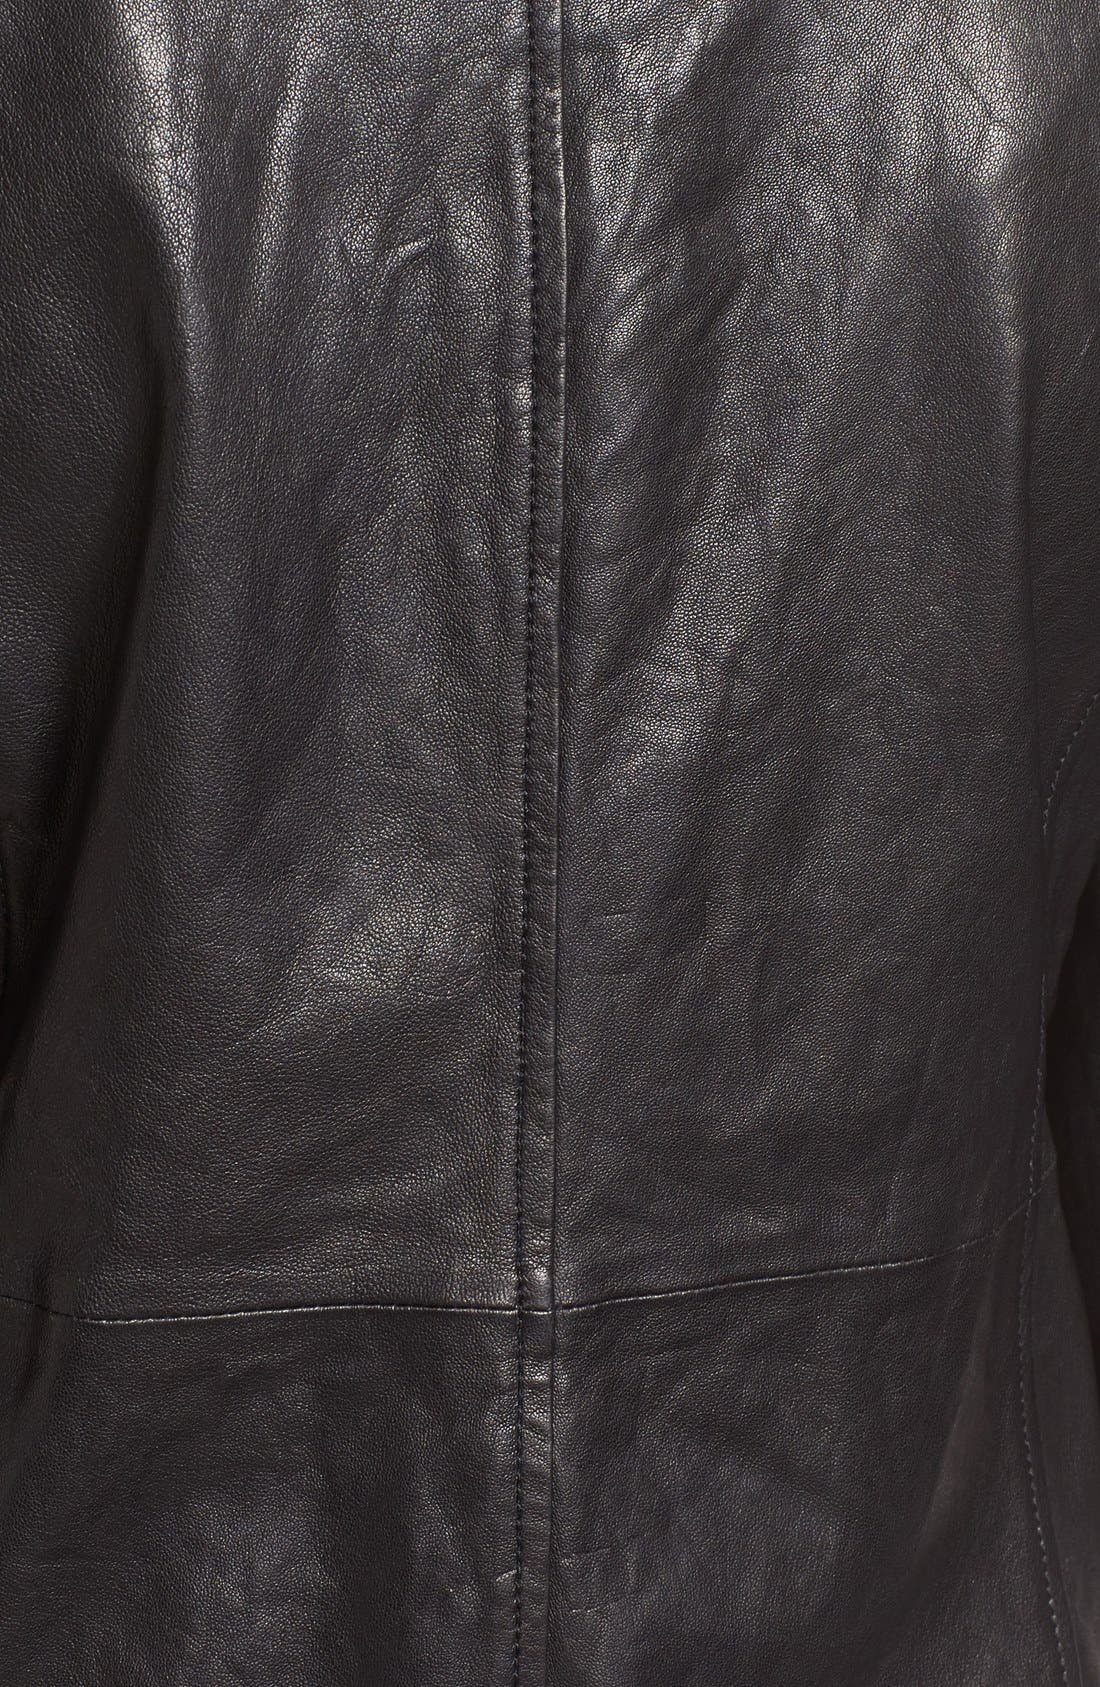 Rumpled Luxe Leather Stand Collar Jacket,                             Alternate thumbnail 5, color,                             Black